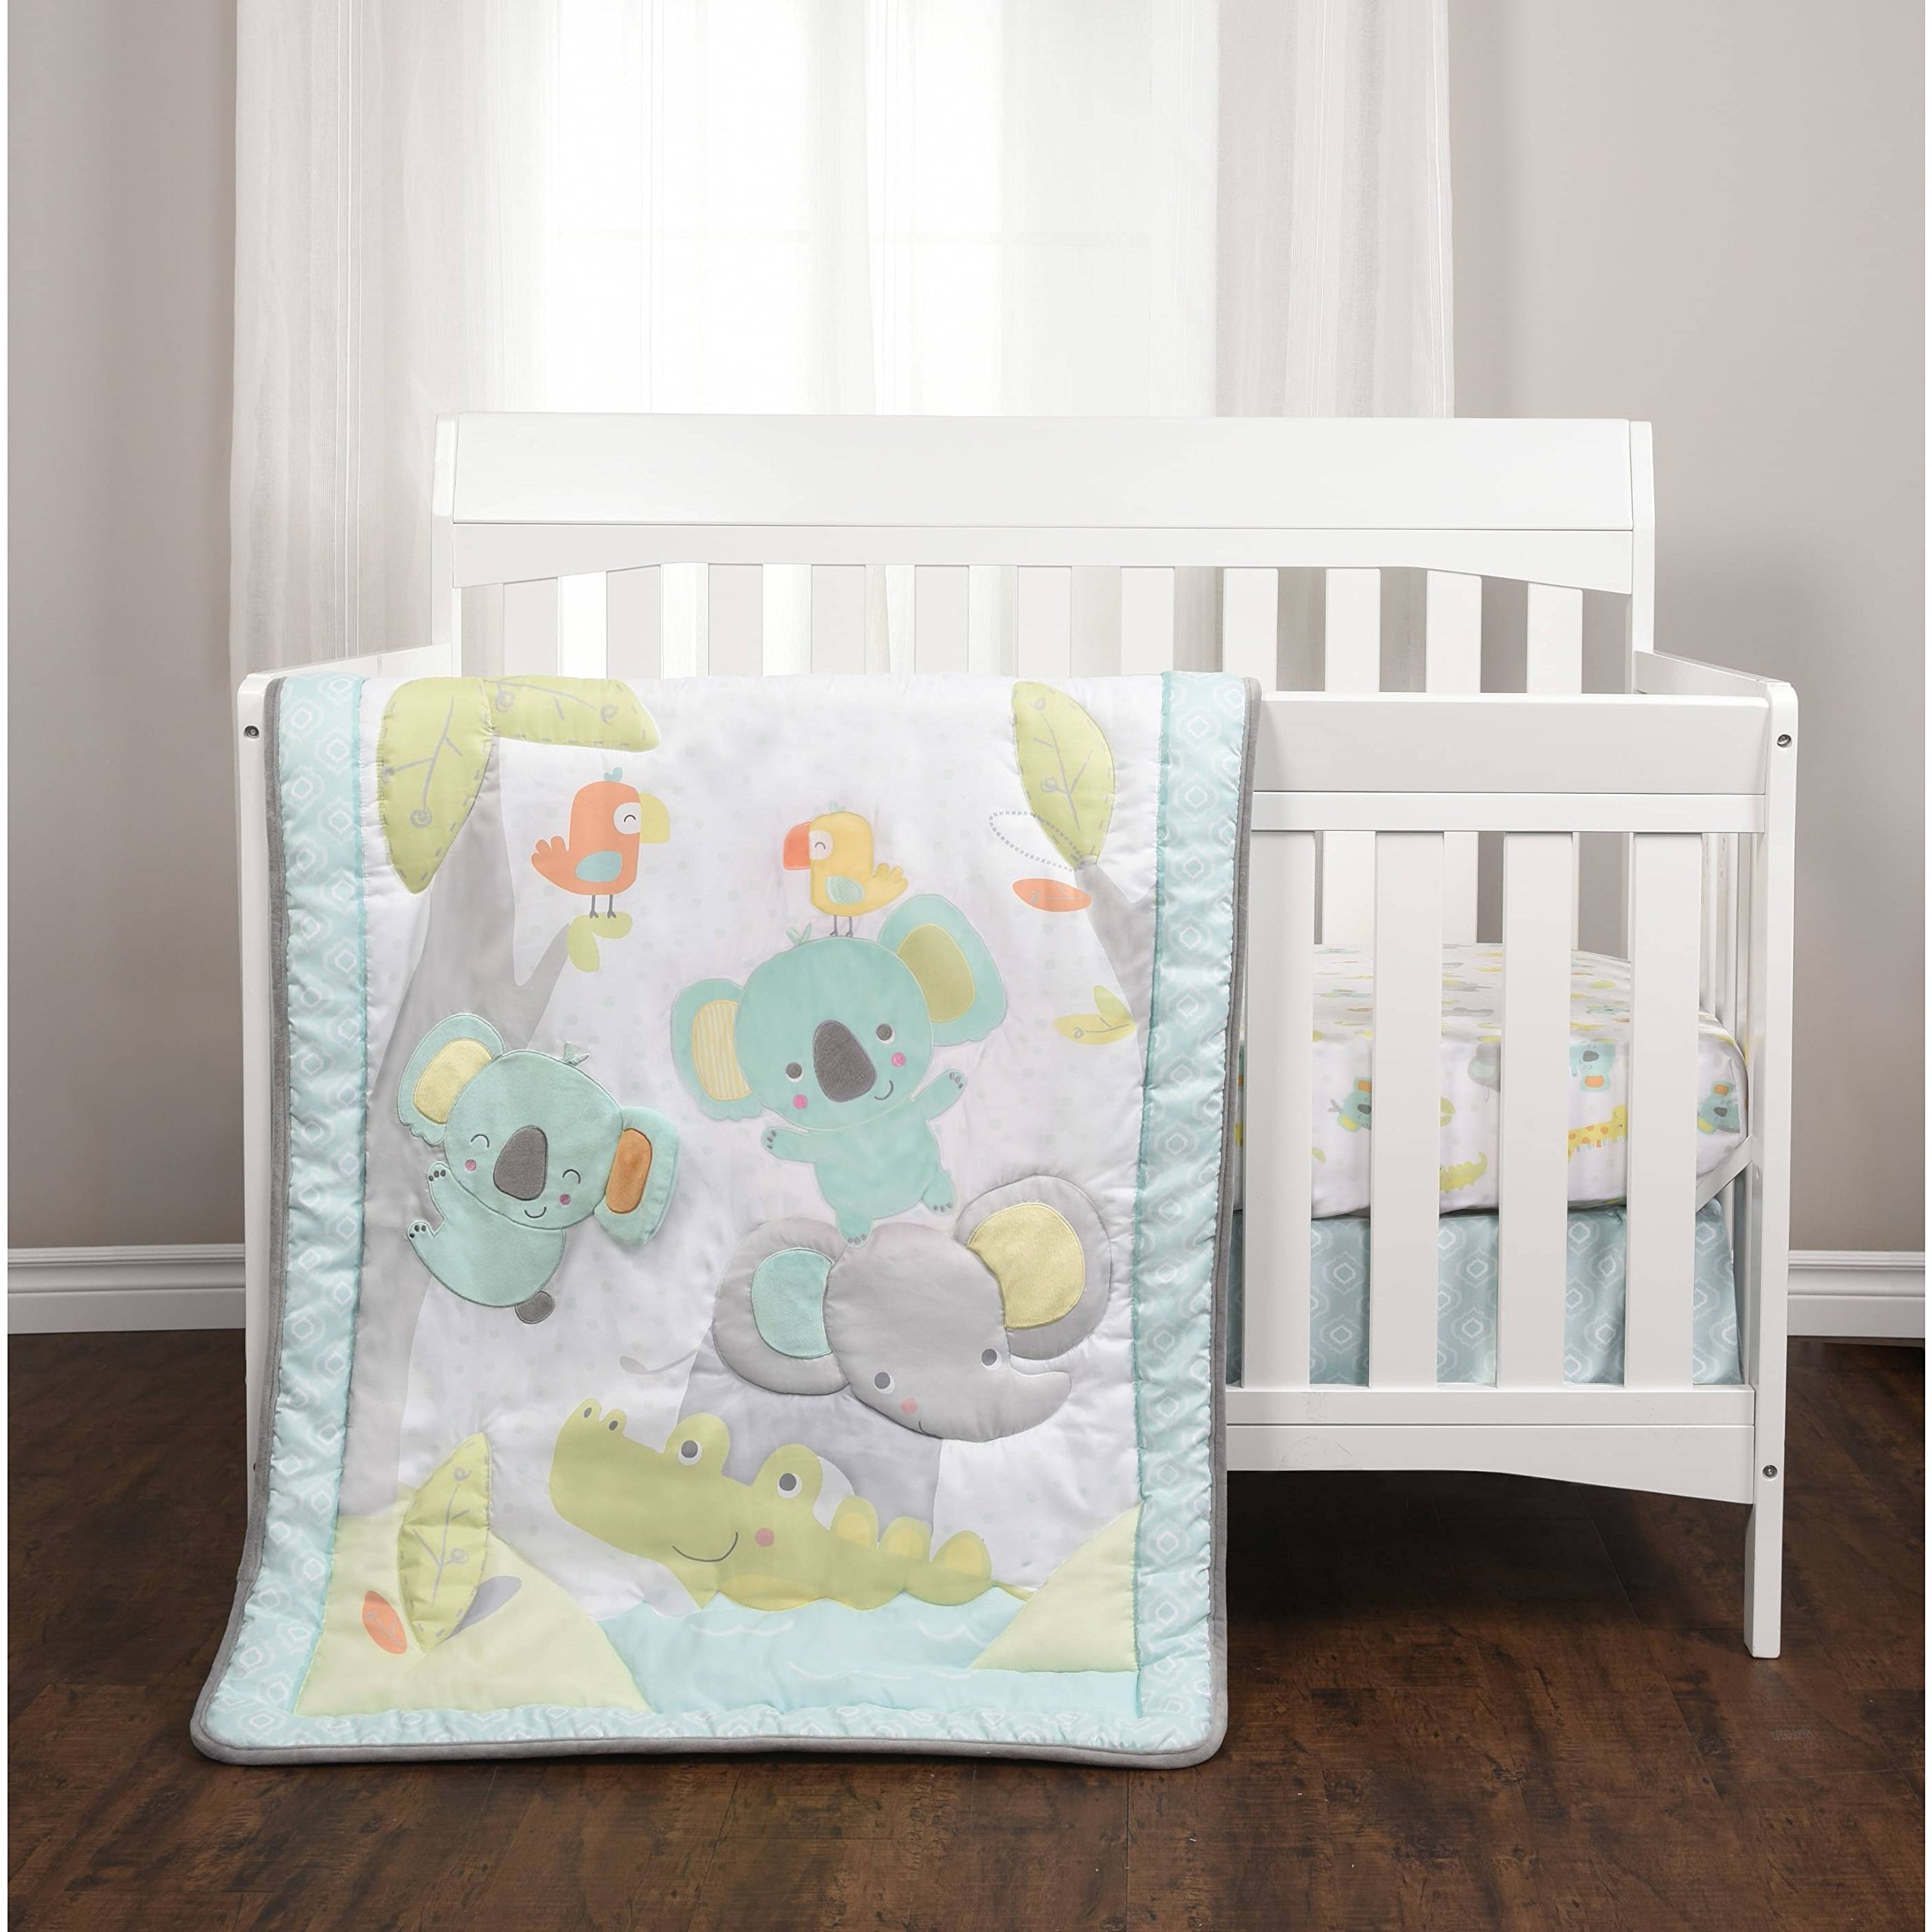 3 Piece Baby Blue Grey White Jungle Crib Bedding Set, Newborn Animal Themed Nursery Bed Set Infant Child Safari Elephant Alligator Birds Koala Bears Water Cute Bold Border Blanket Comforter, Cotton